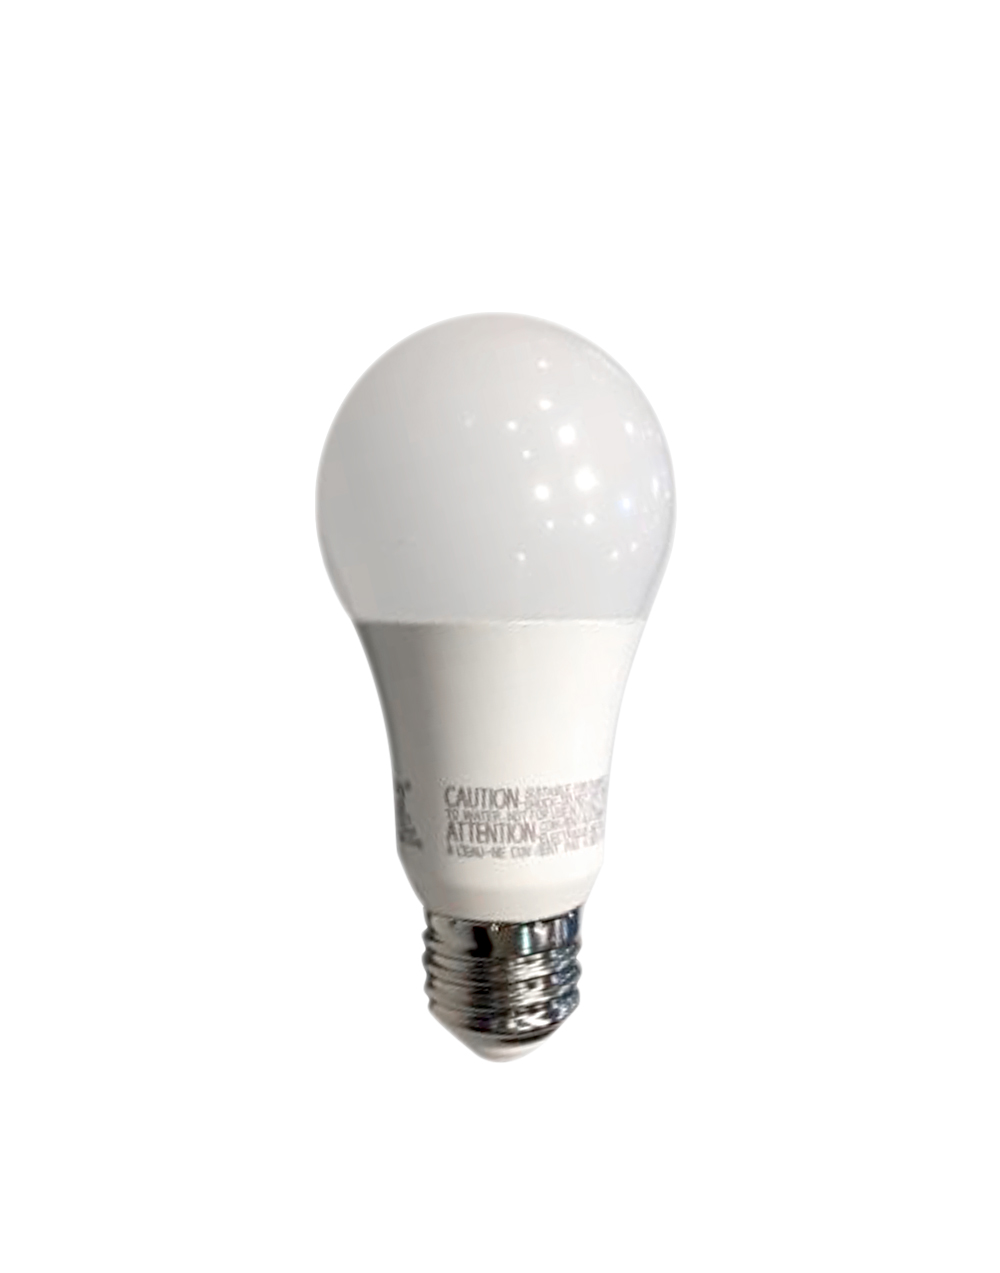 Led A19 Light Bulbs - Ledshine 360 A19 Led Light Bulb Atg Stores, Led A19 7w Or 10w Dimmable ...